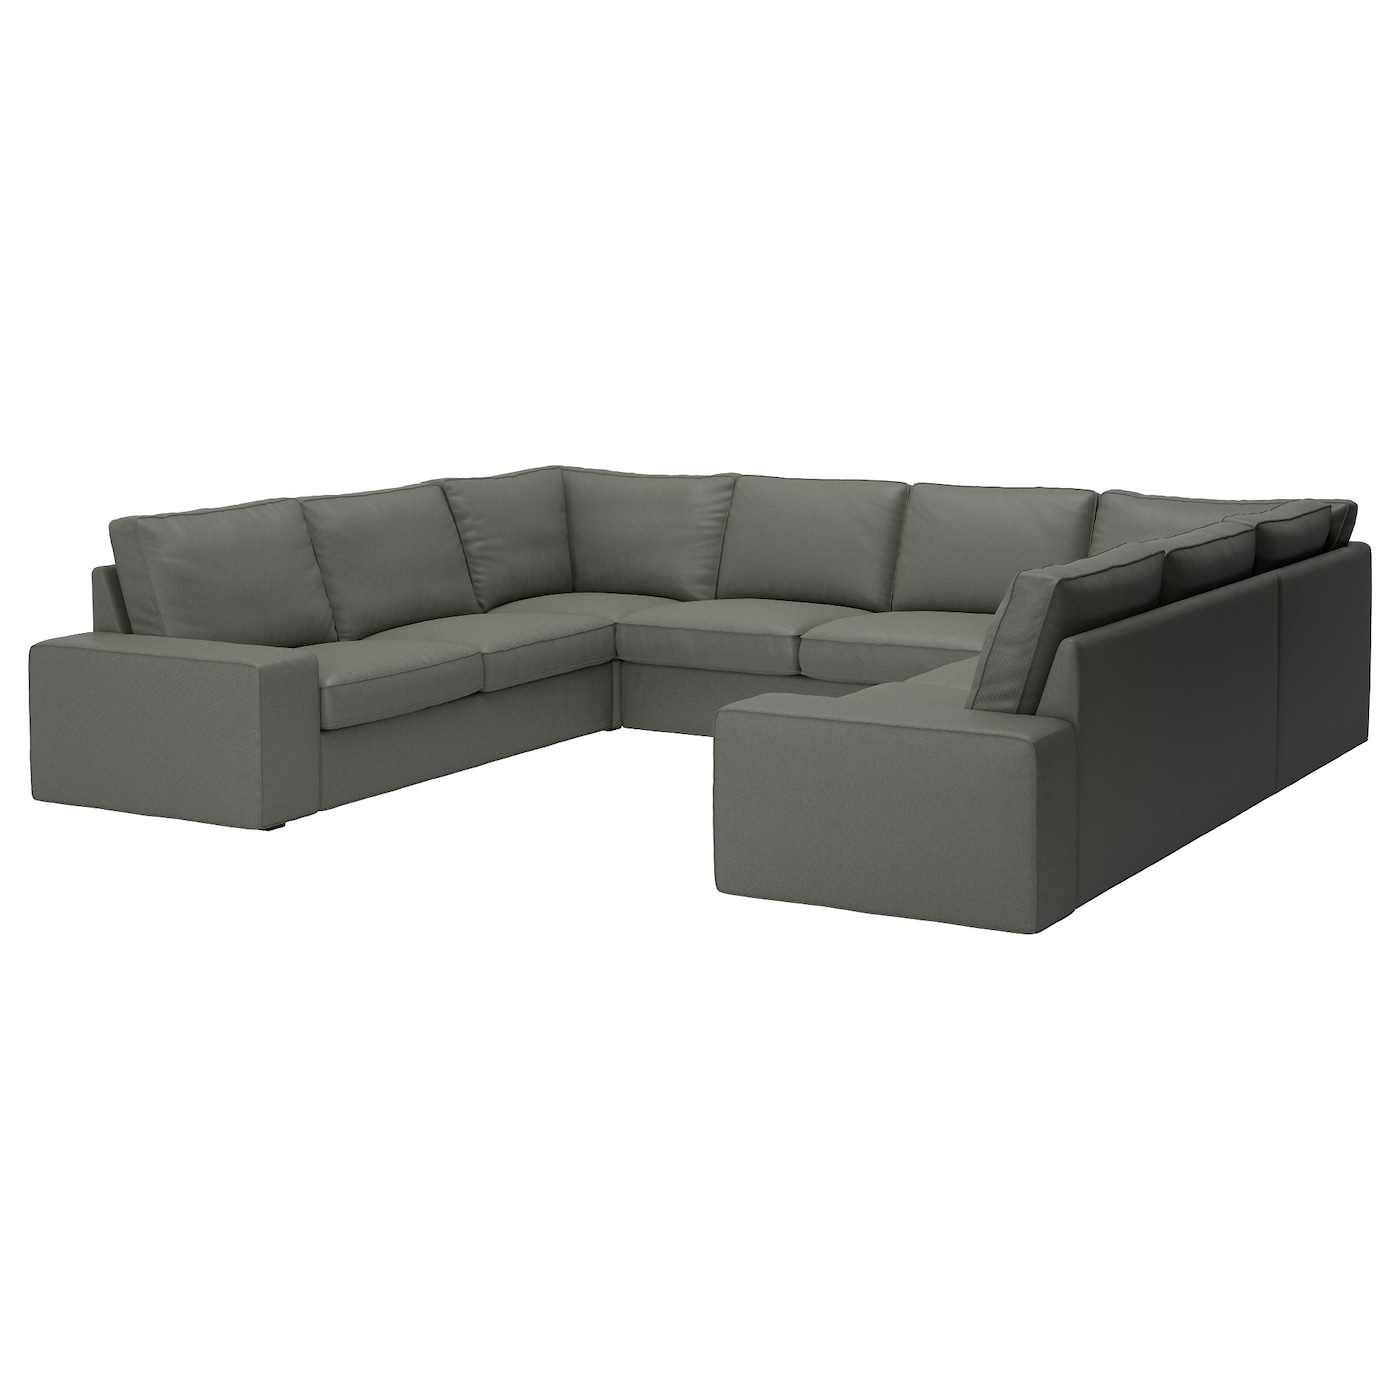 Kivik sofa u shaped 8 seater borred grey green ikea for Sofa en l liquidation